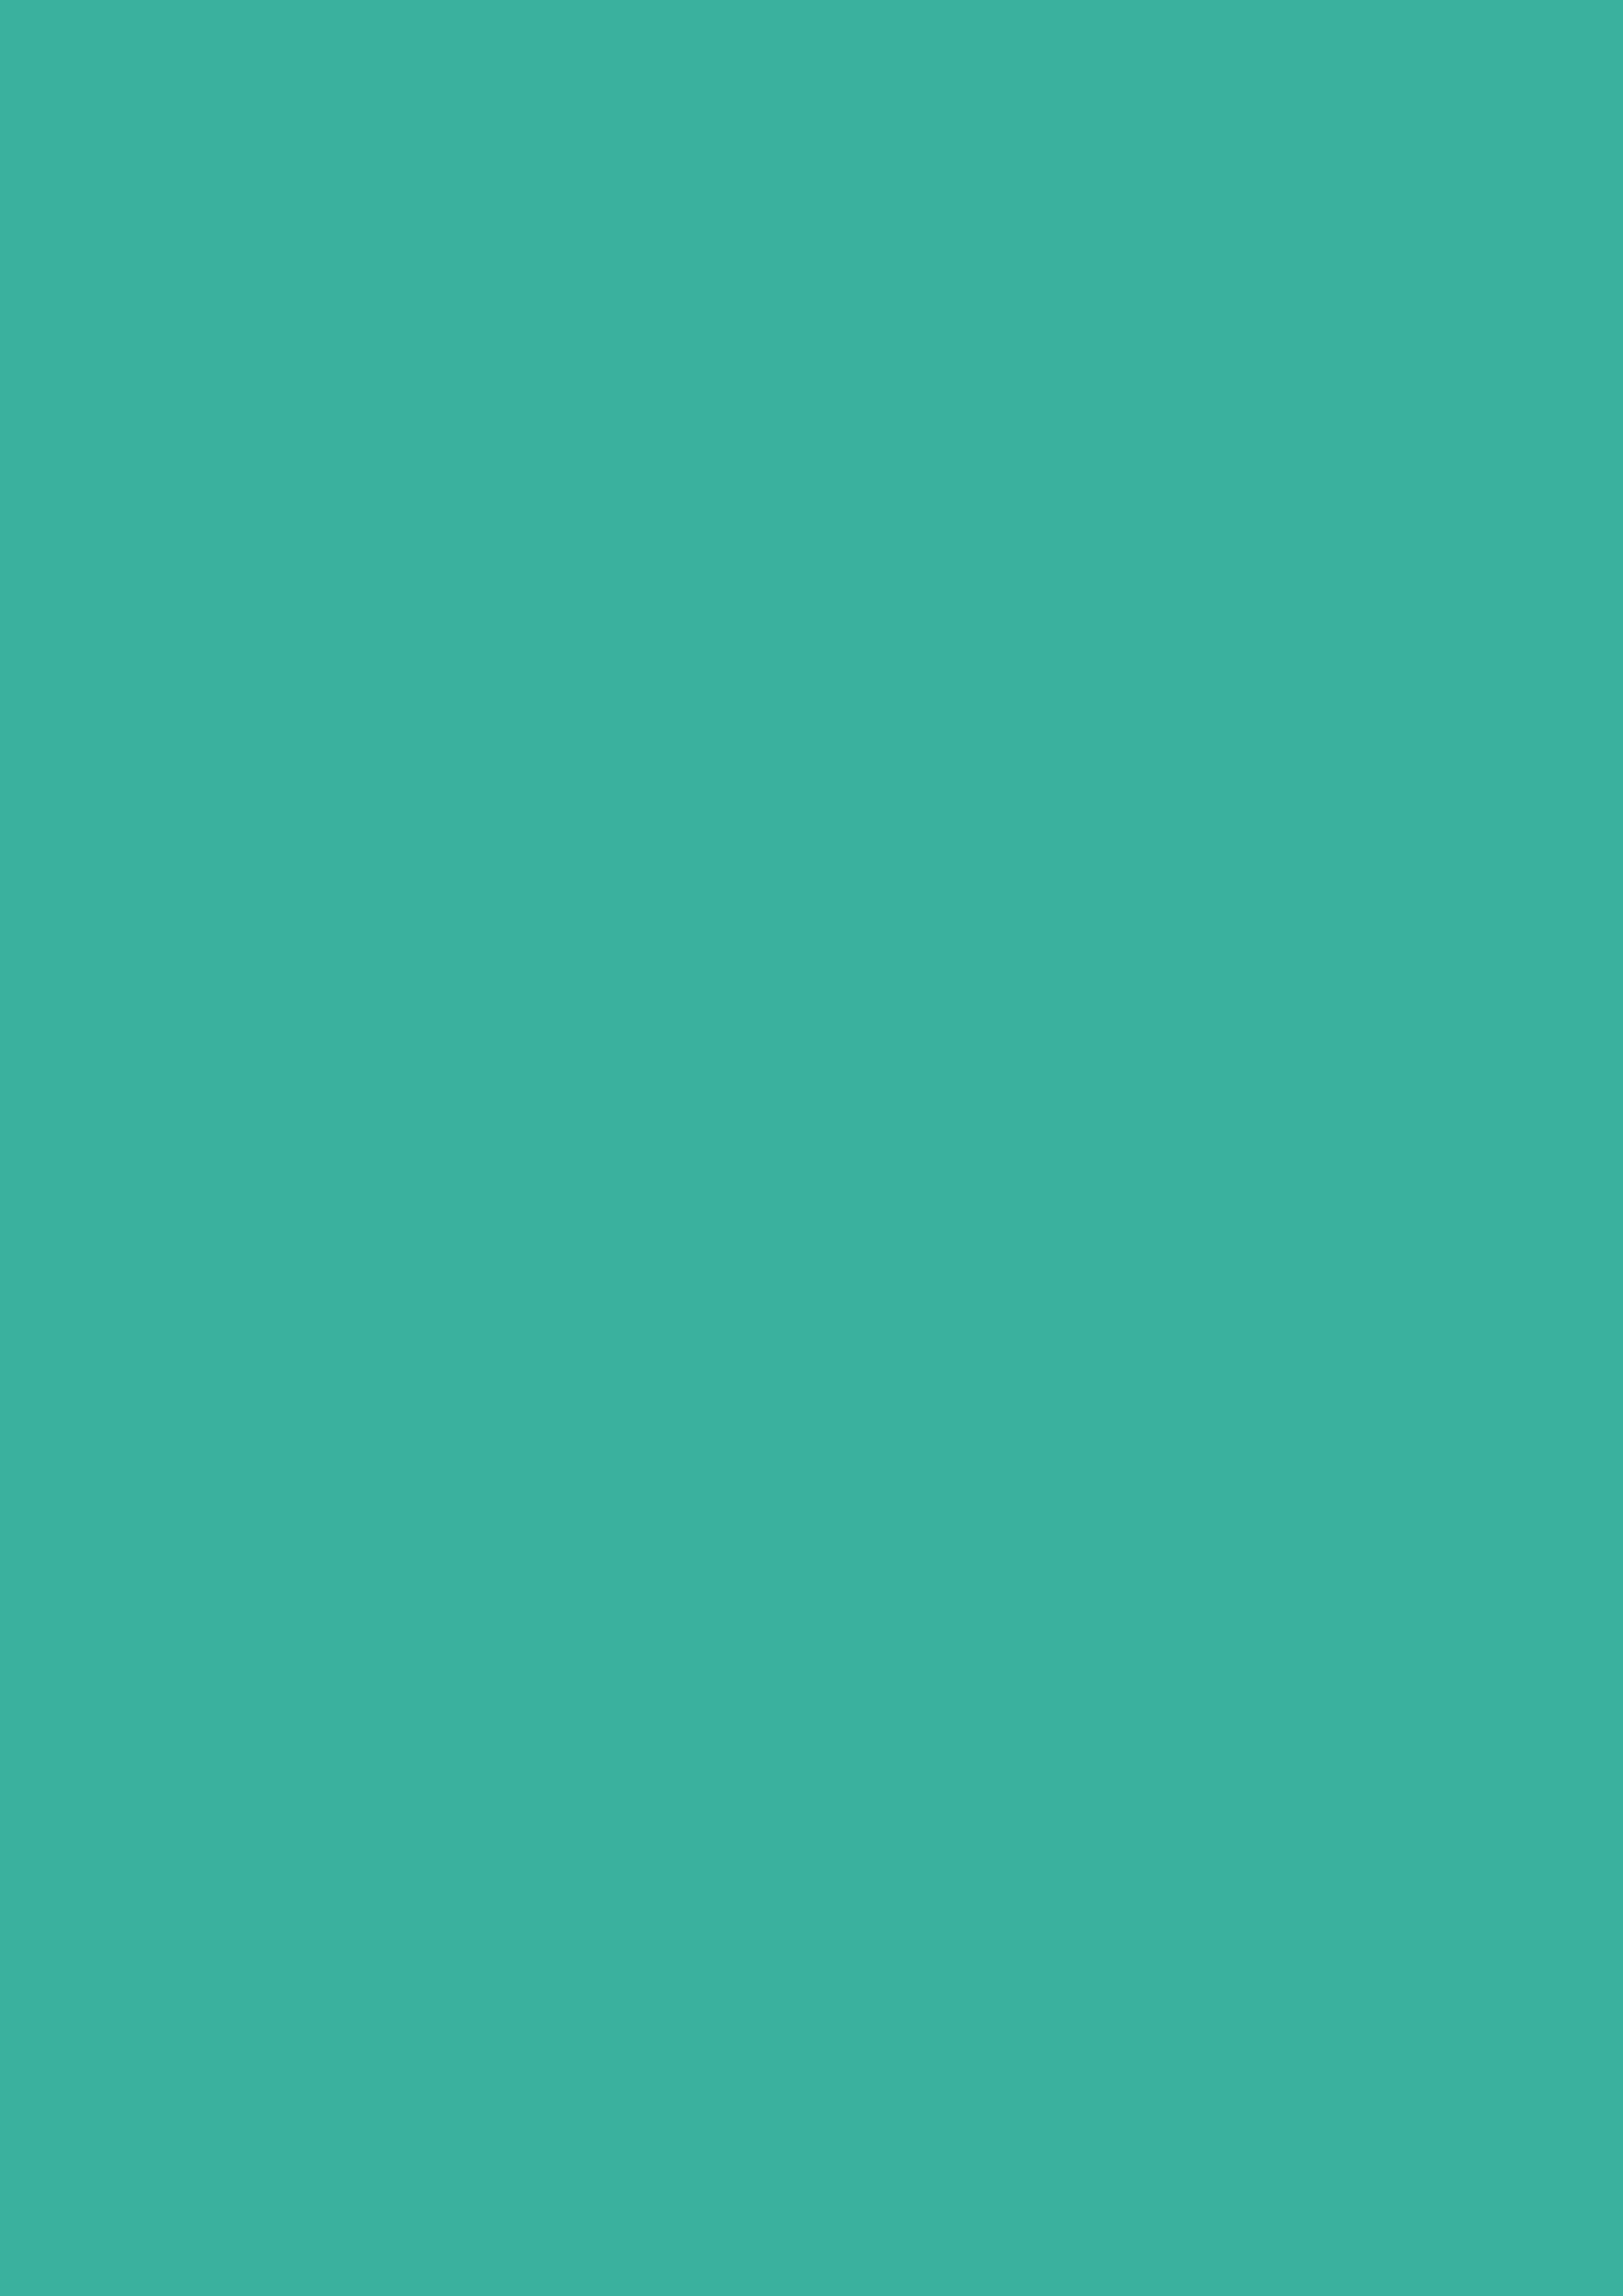 2480x3508 Keppel Solid Color Background